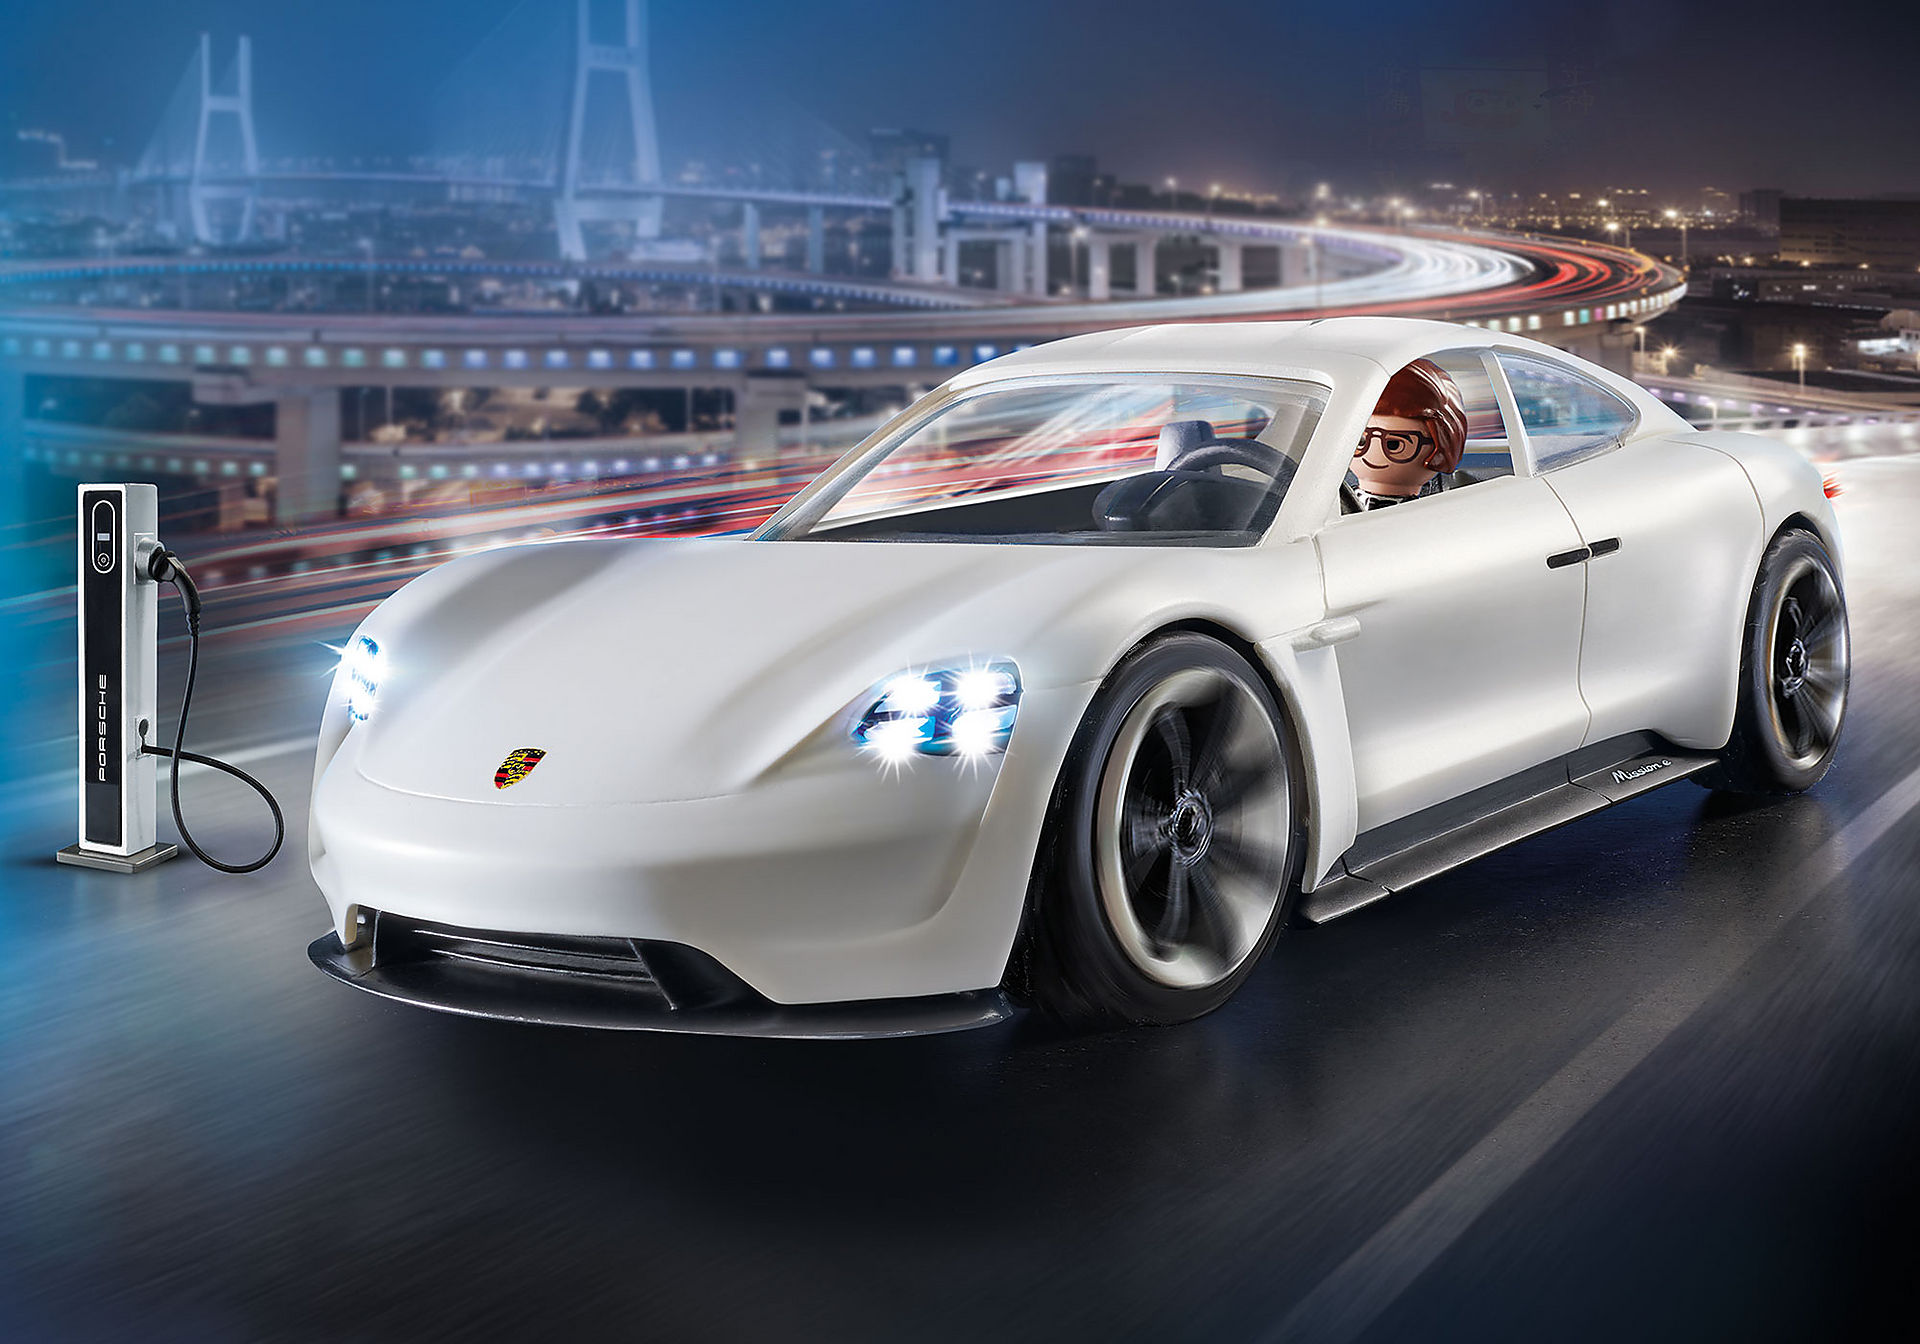 70078 PLAYMOBIL: THE MOVIE Porsche Mission E y Rex Dasher zoom image1